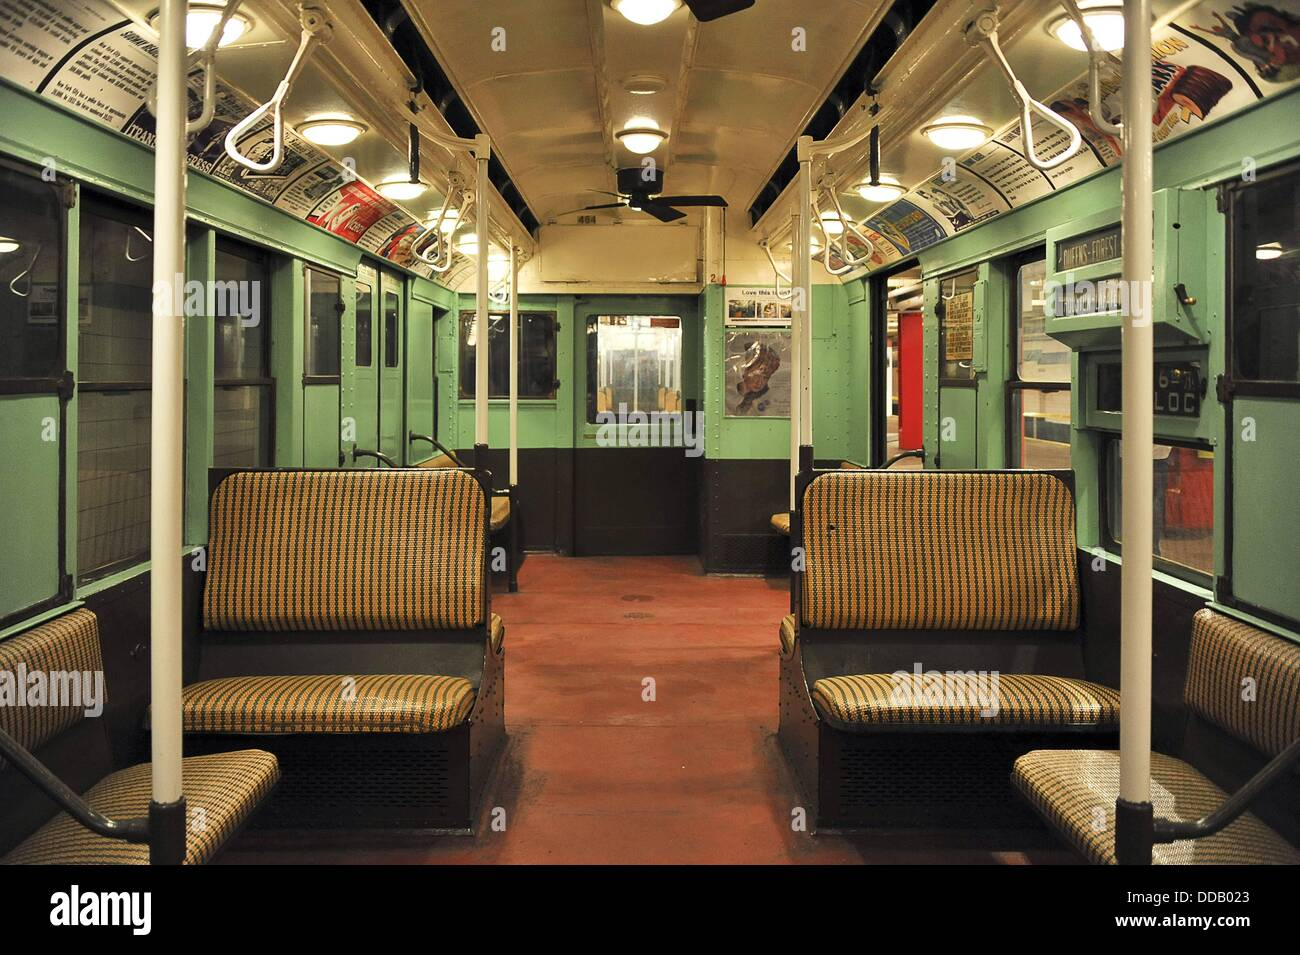 interior of new york city r 4 city car a subway car in the new york stock photo royalty free. Black Bedroom Furniture Sets. Home Design Ideas